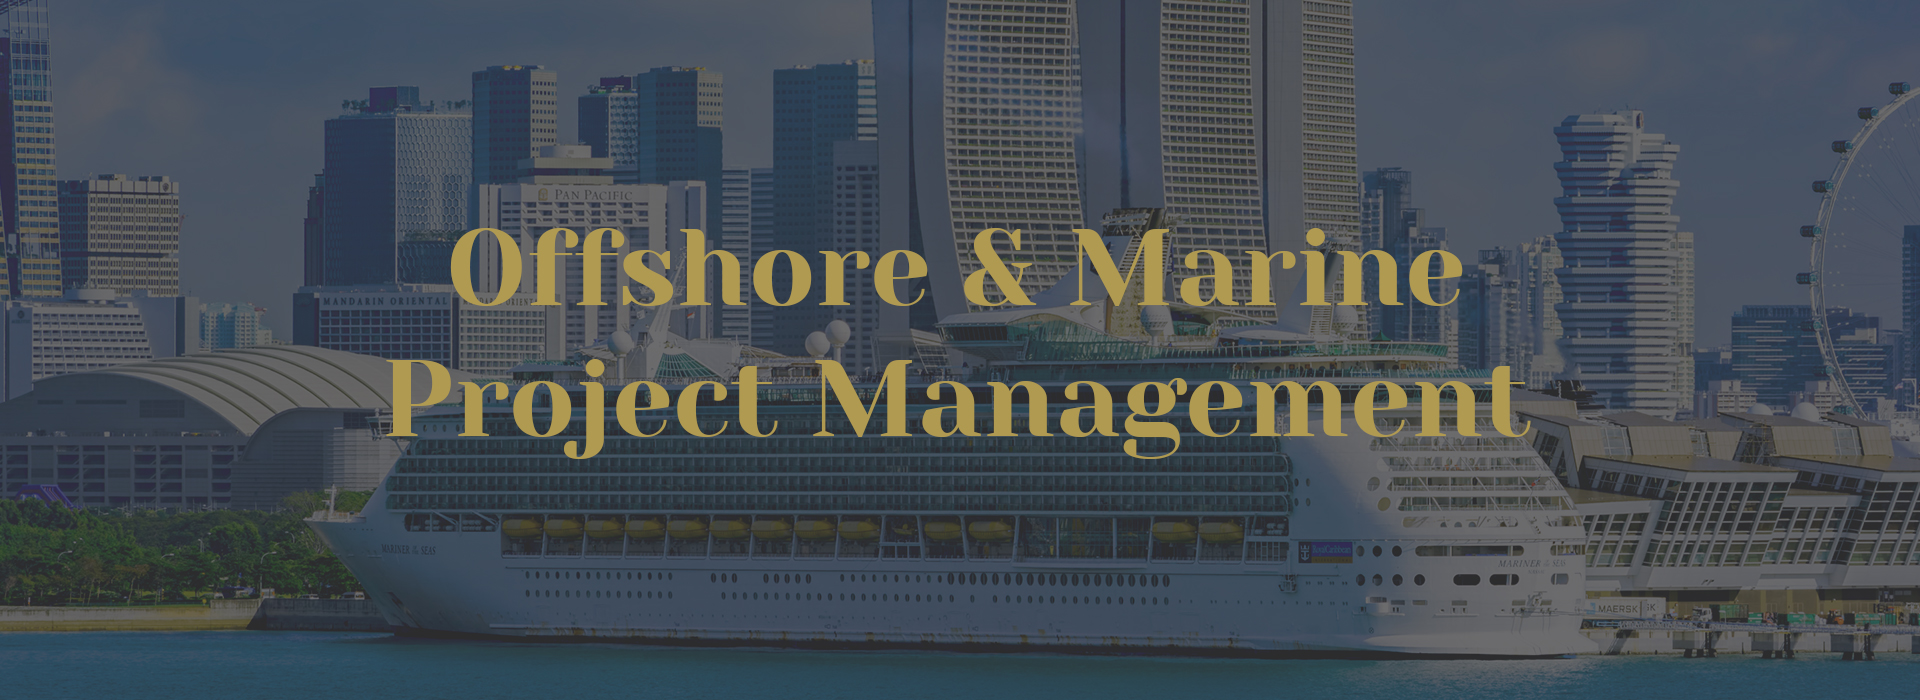 Offshore-Marine-Project-Management